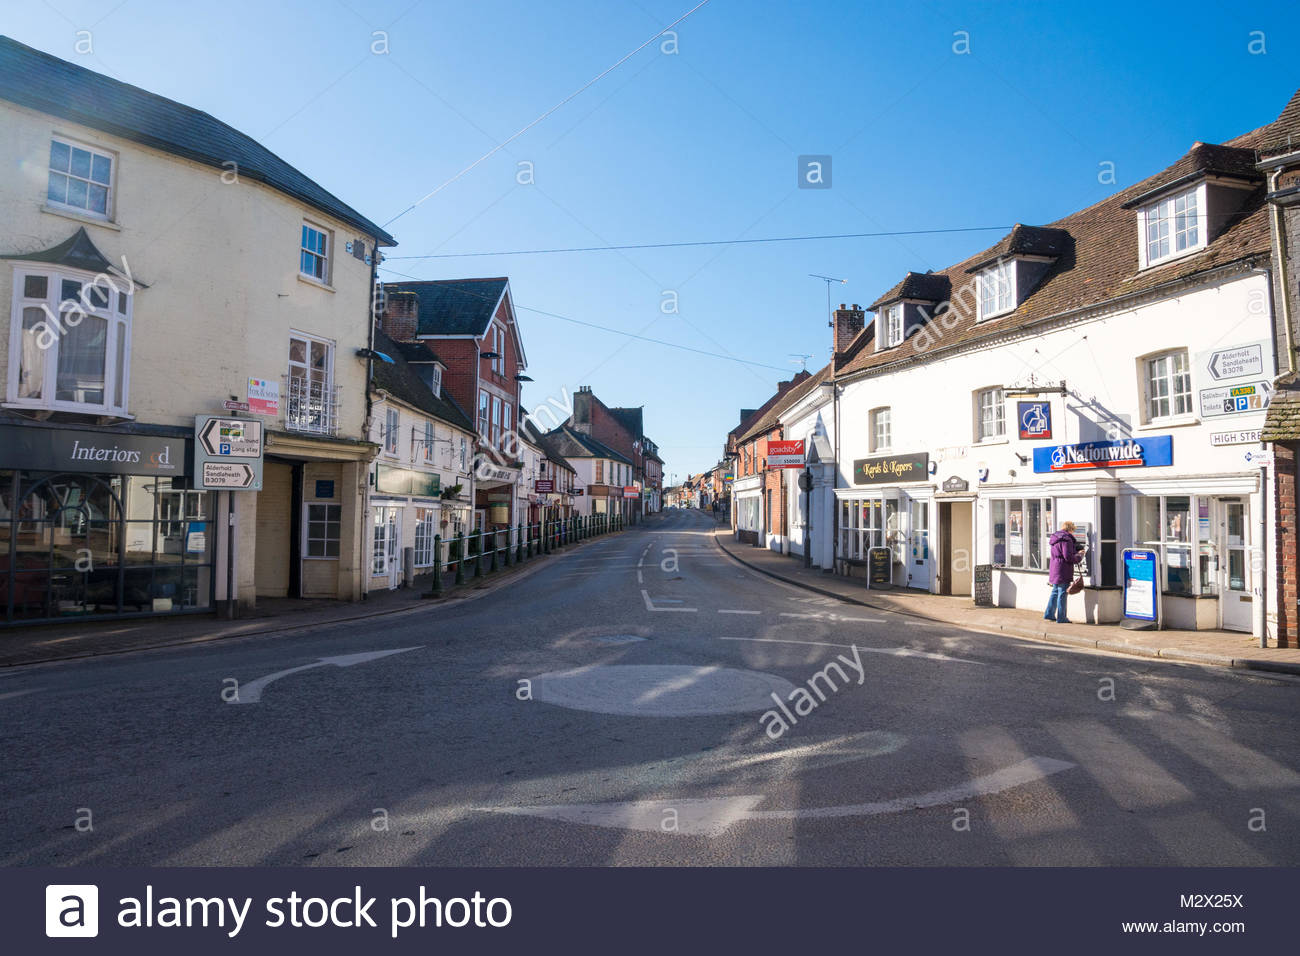 Fordingbridge High Street, New Forest, Hampshire, UK, on a sunny day with no traffic on the street. Stock Photo